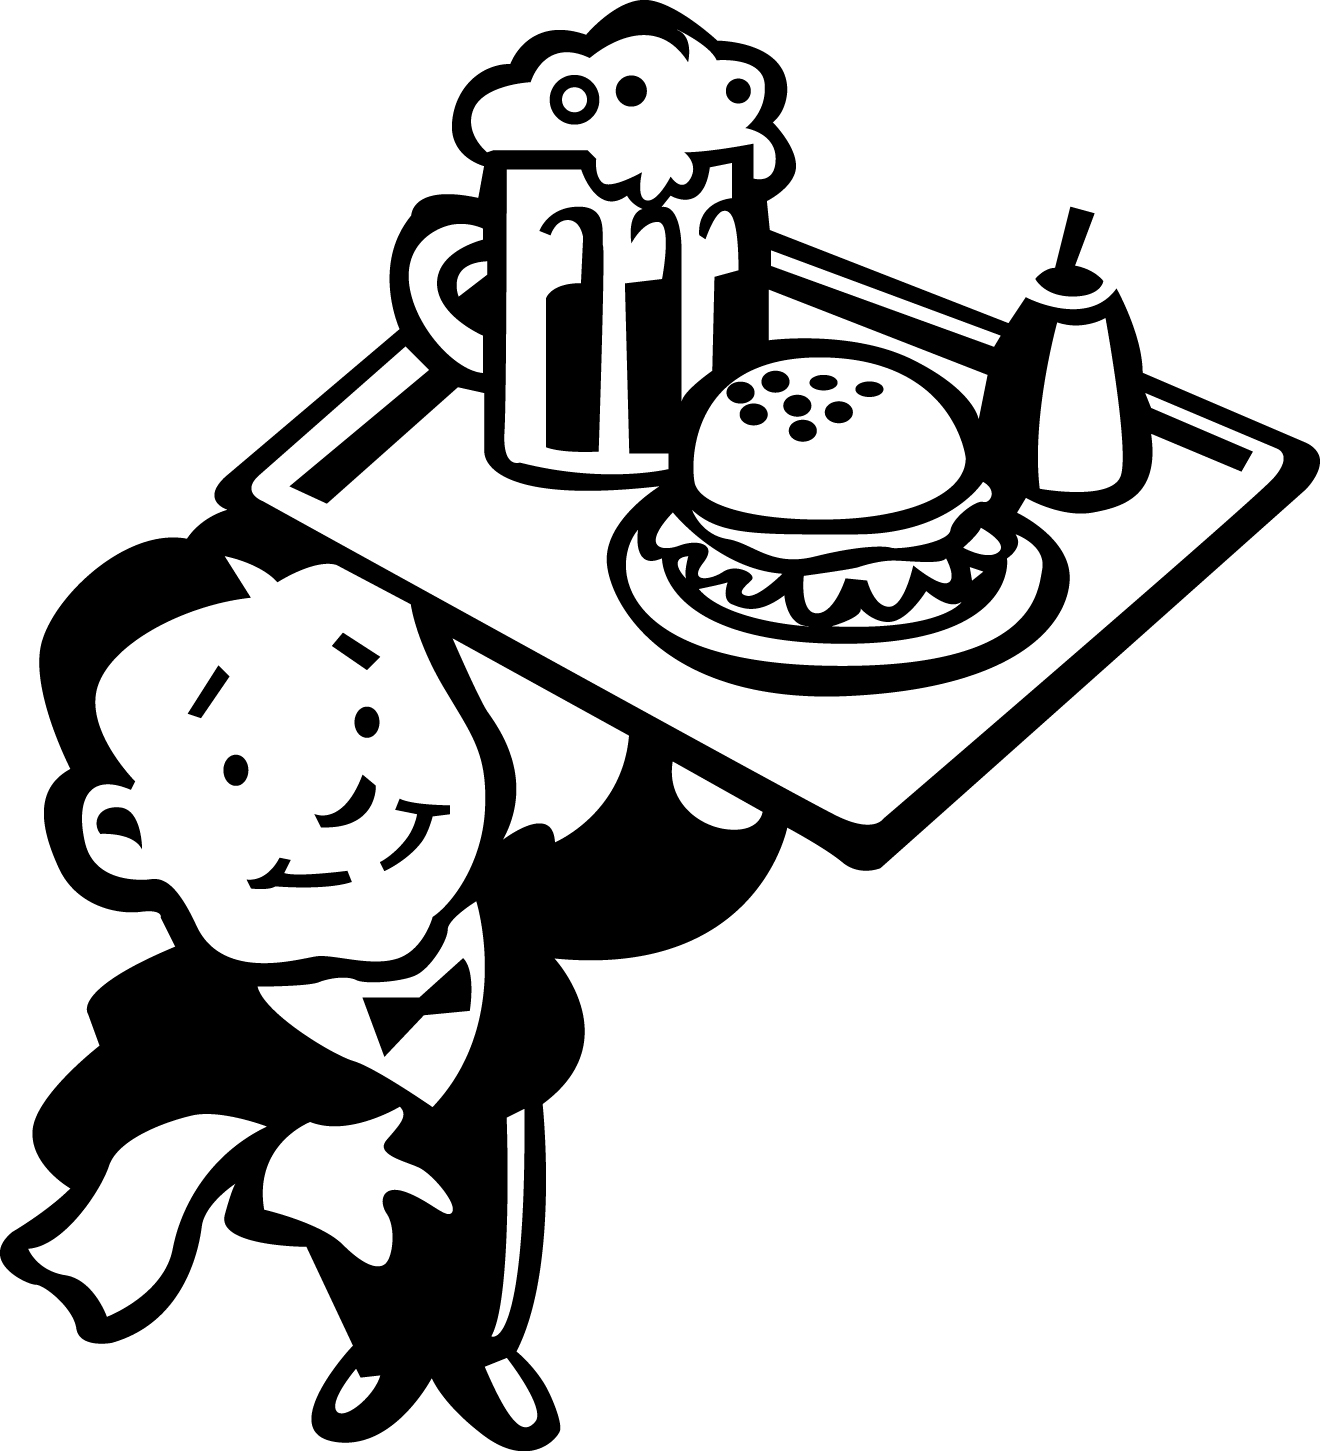 From Veronica At Hubpages Do You Have To Tip The Waiter How Much